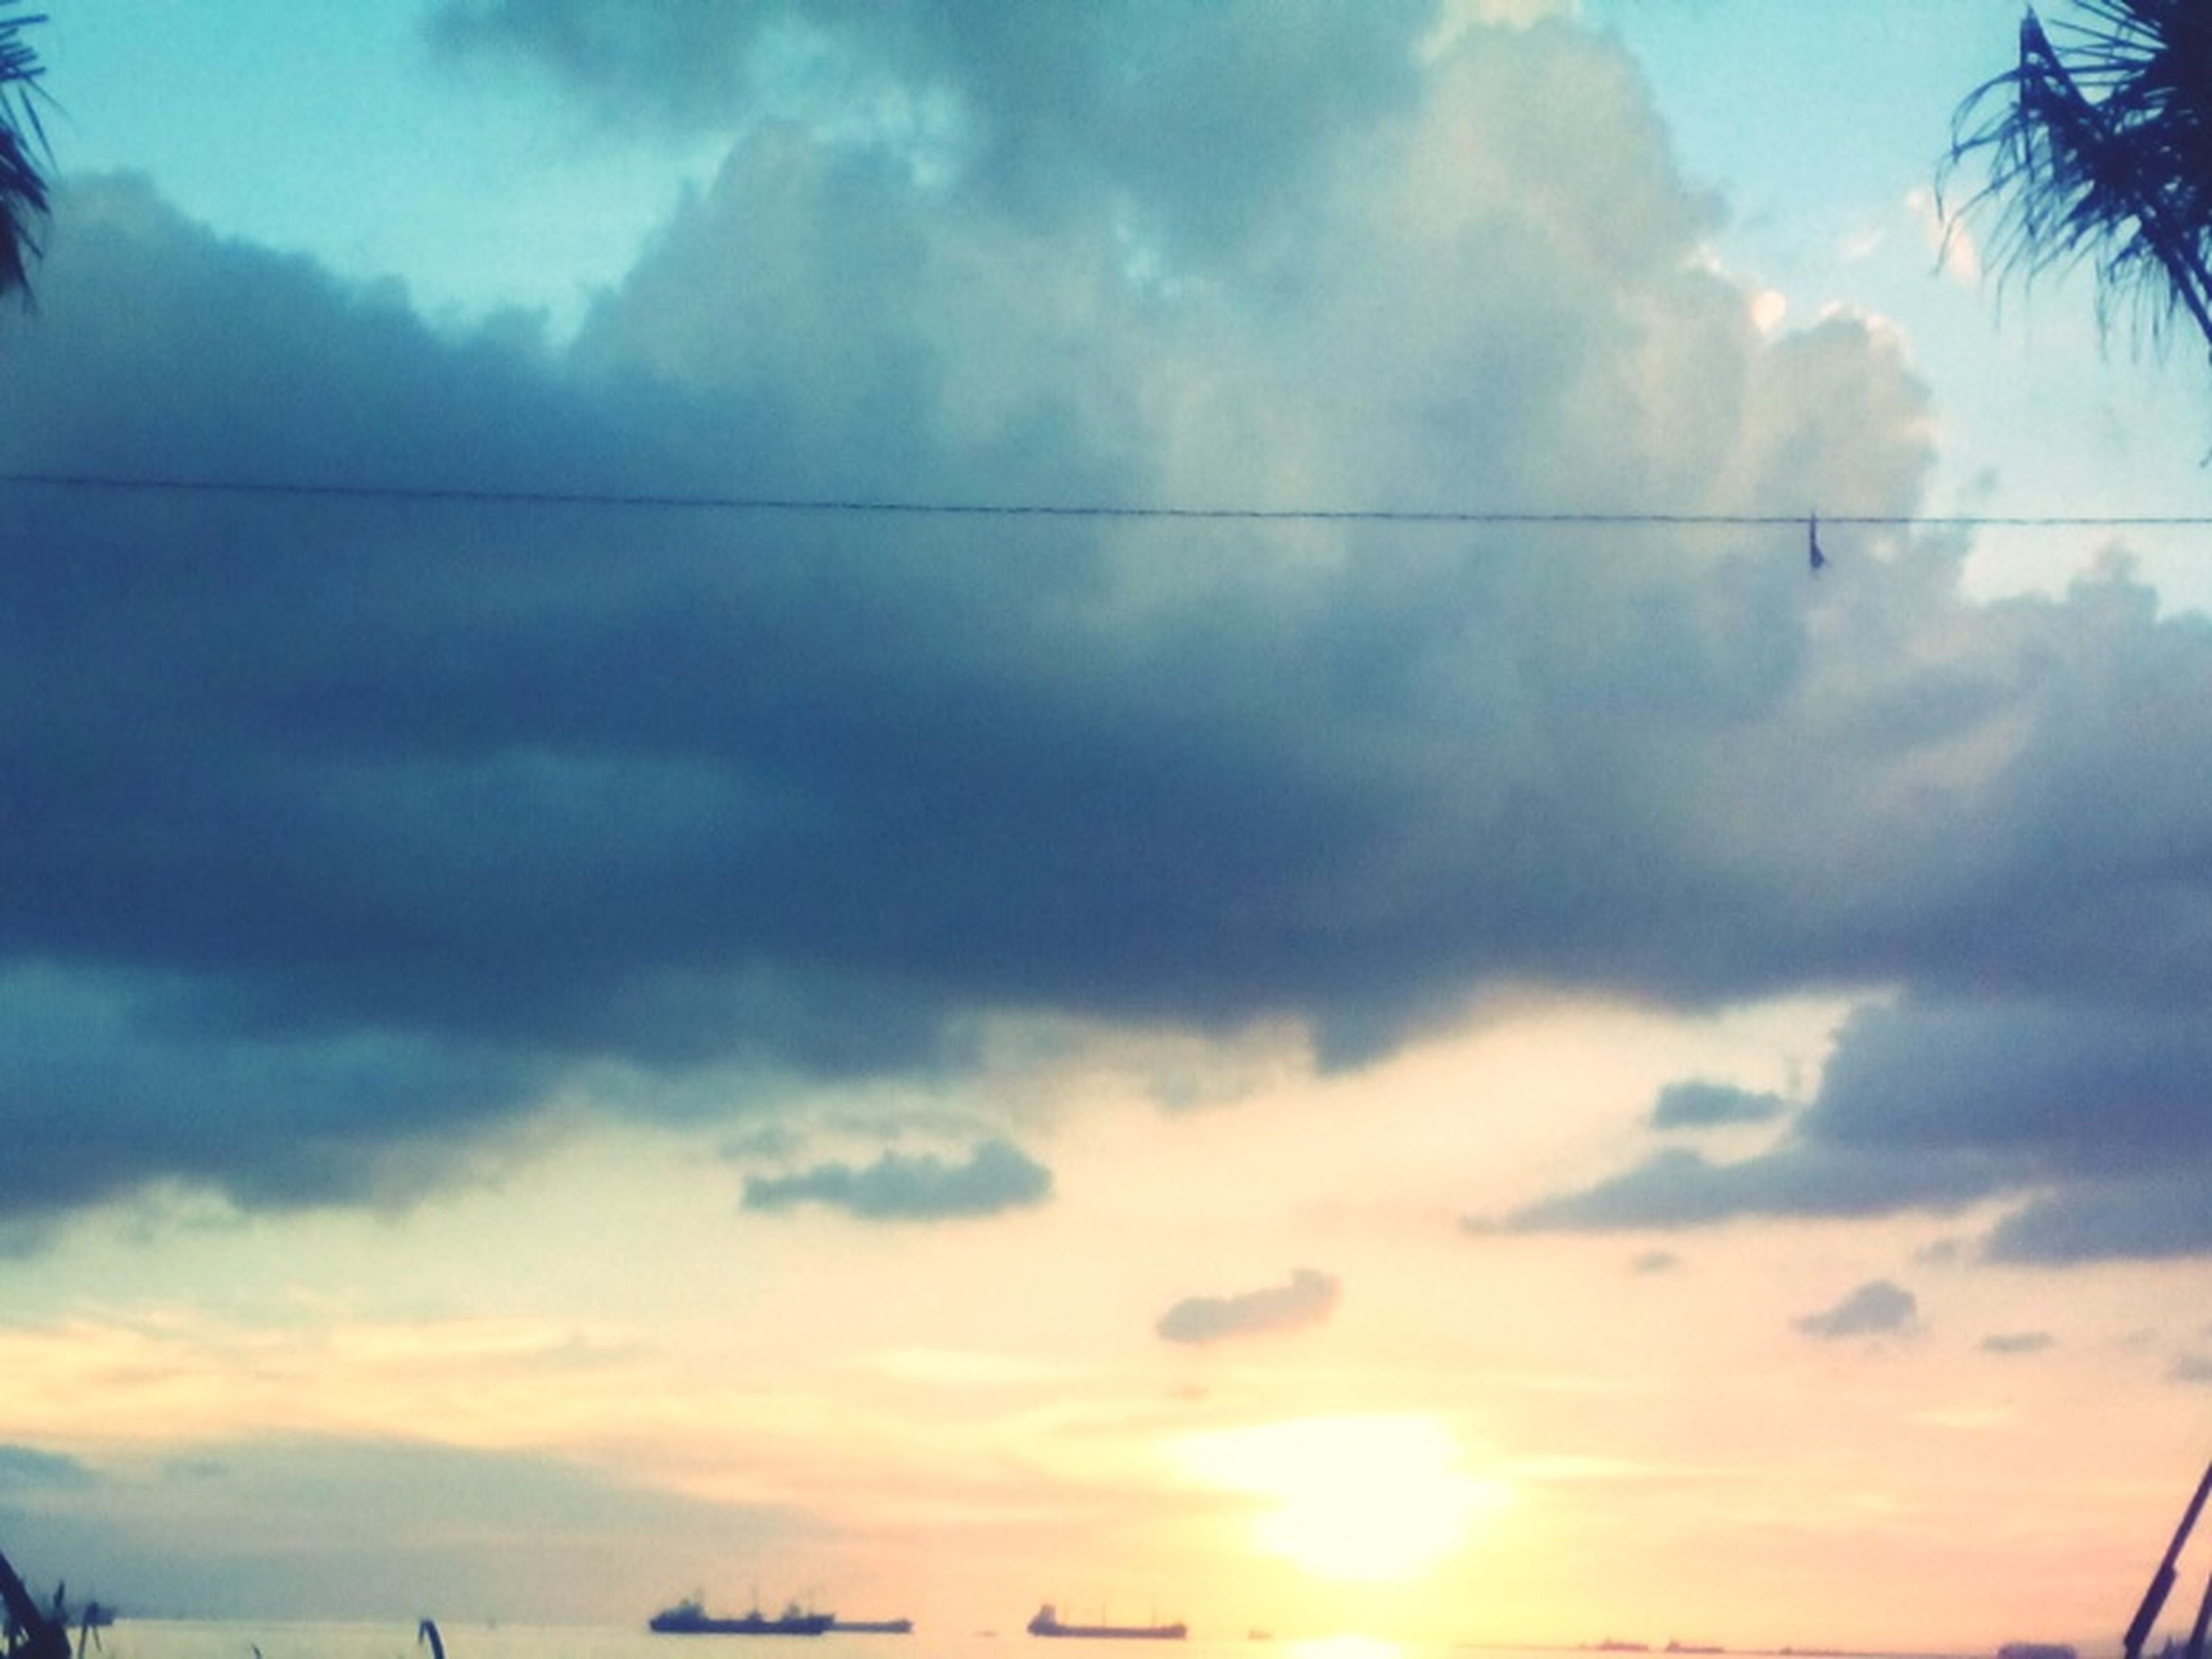 sky, cloud - sky, sunset, low angle view, cloudy, cloud, beauty in nature, silhouette, tranquility, scenics, nature, tranquil scene, sun, tree, sunlight, sunbeam, outdoors, power line, no people, idyllic